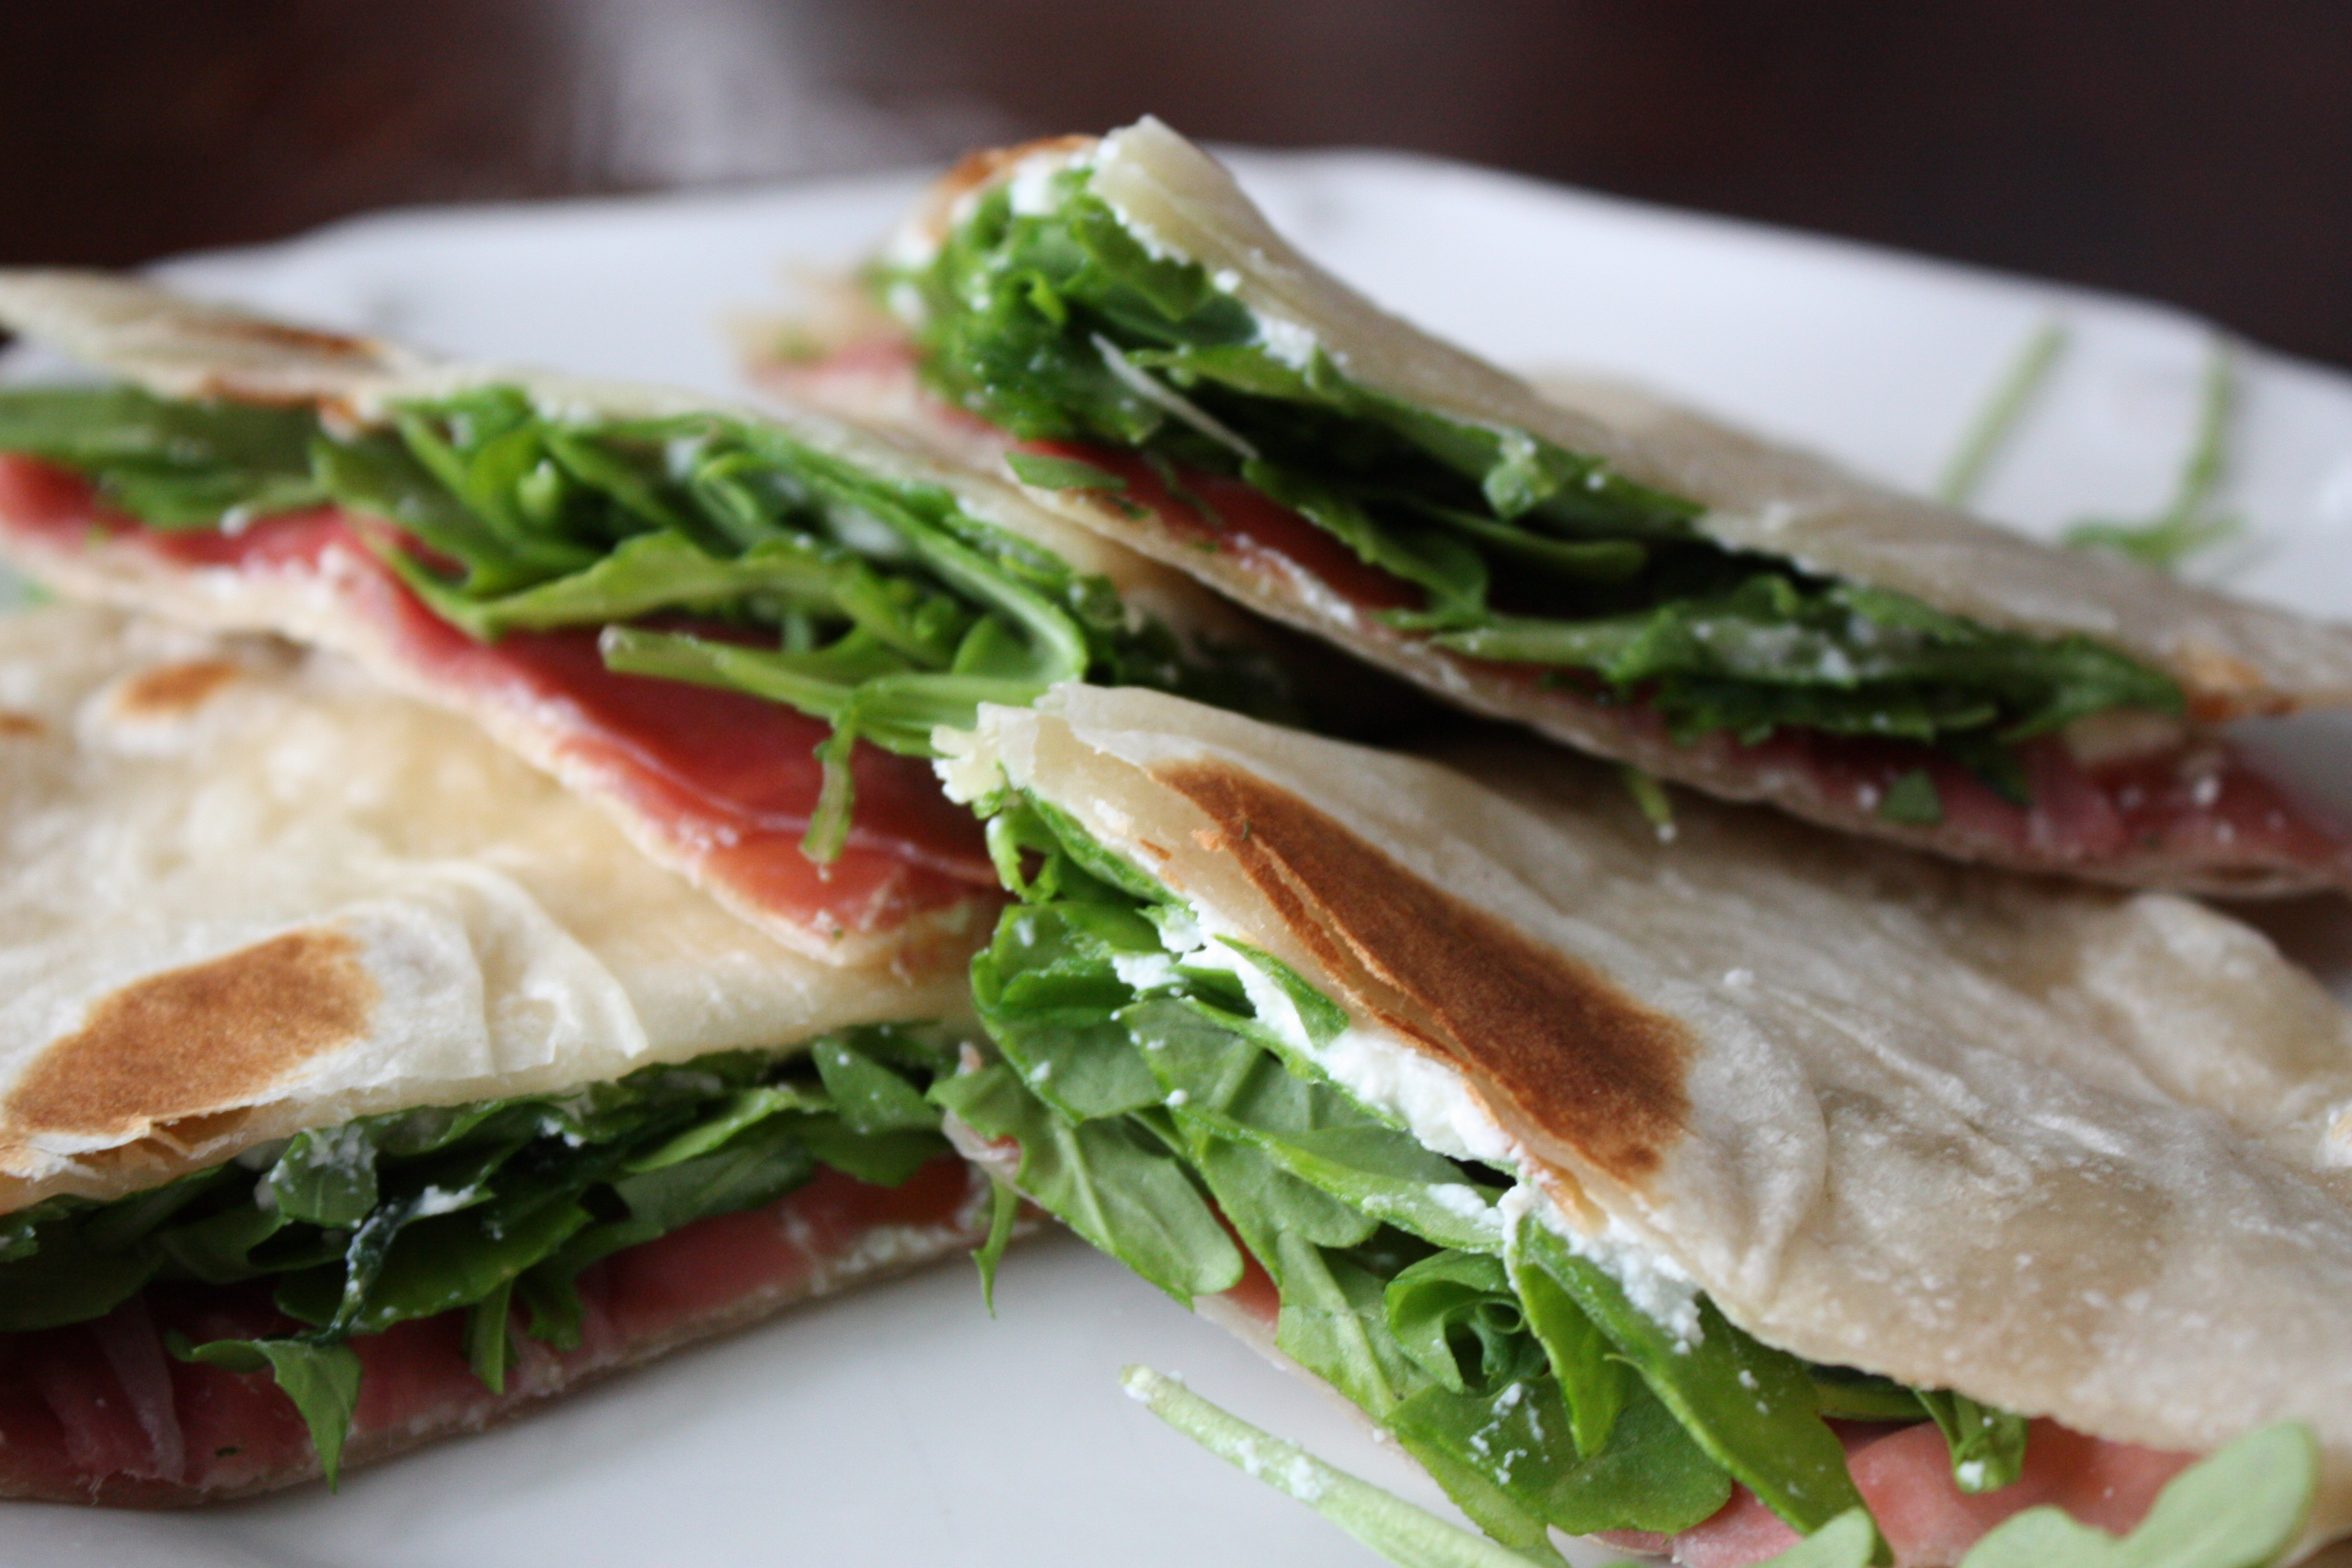 ARUGULA RICOTTA SANDWICHES- SERVING